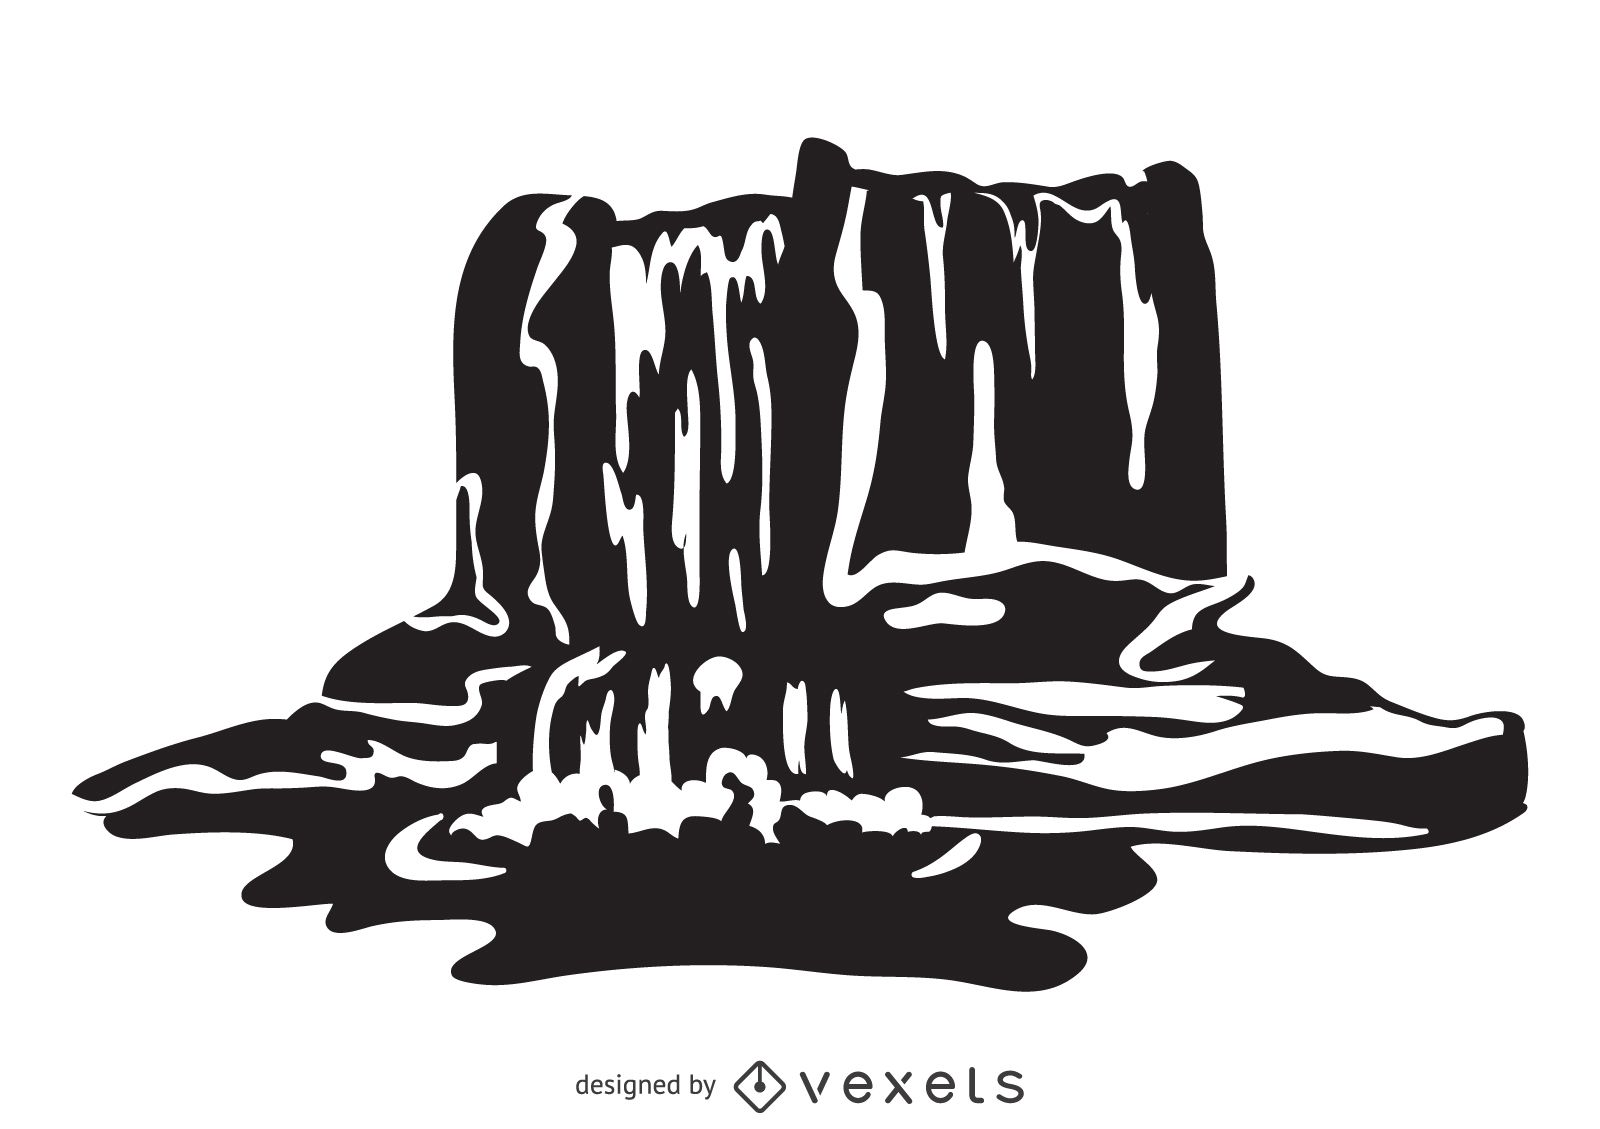 Waterfall illustration in black and white